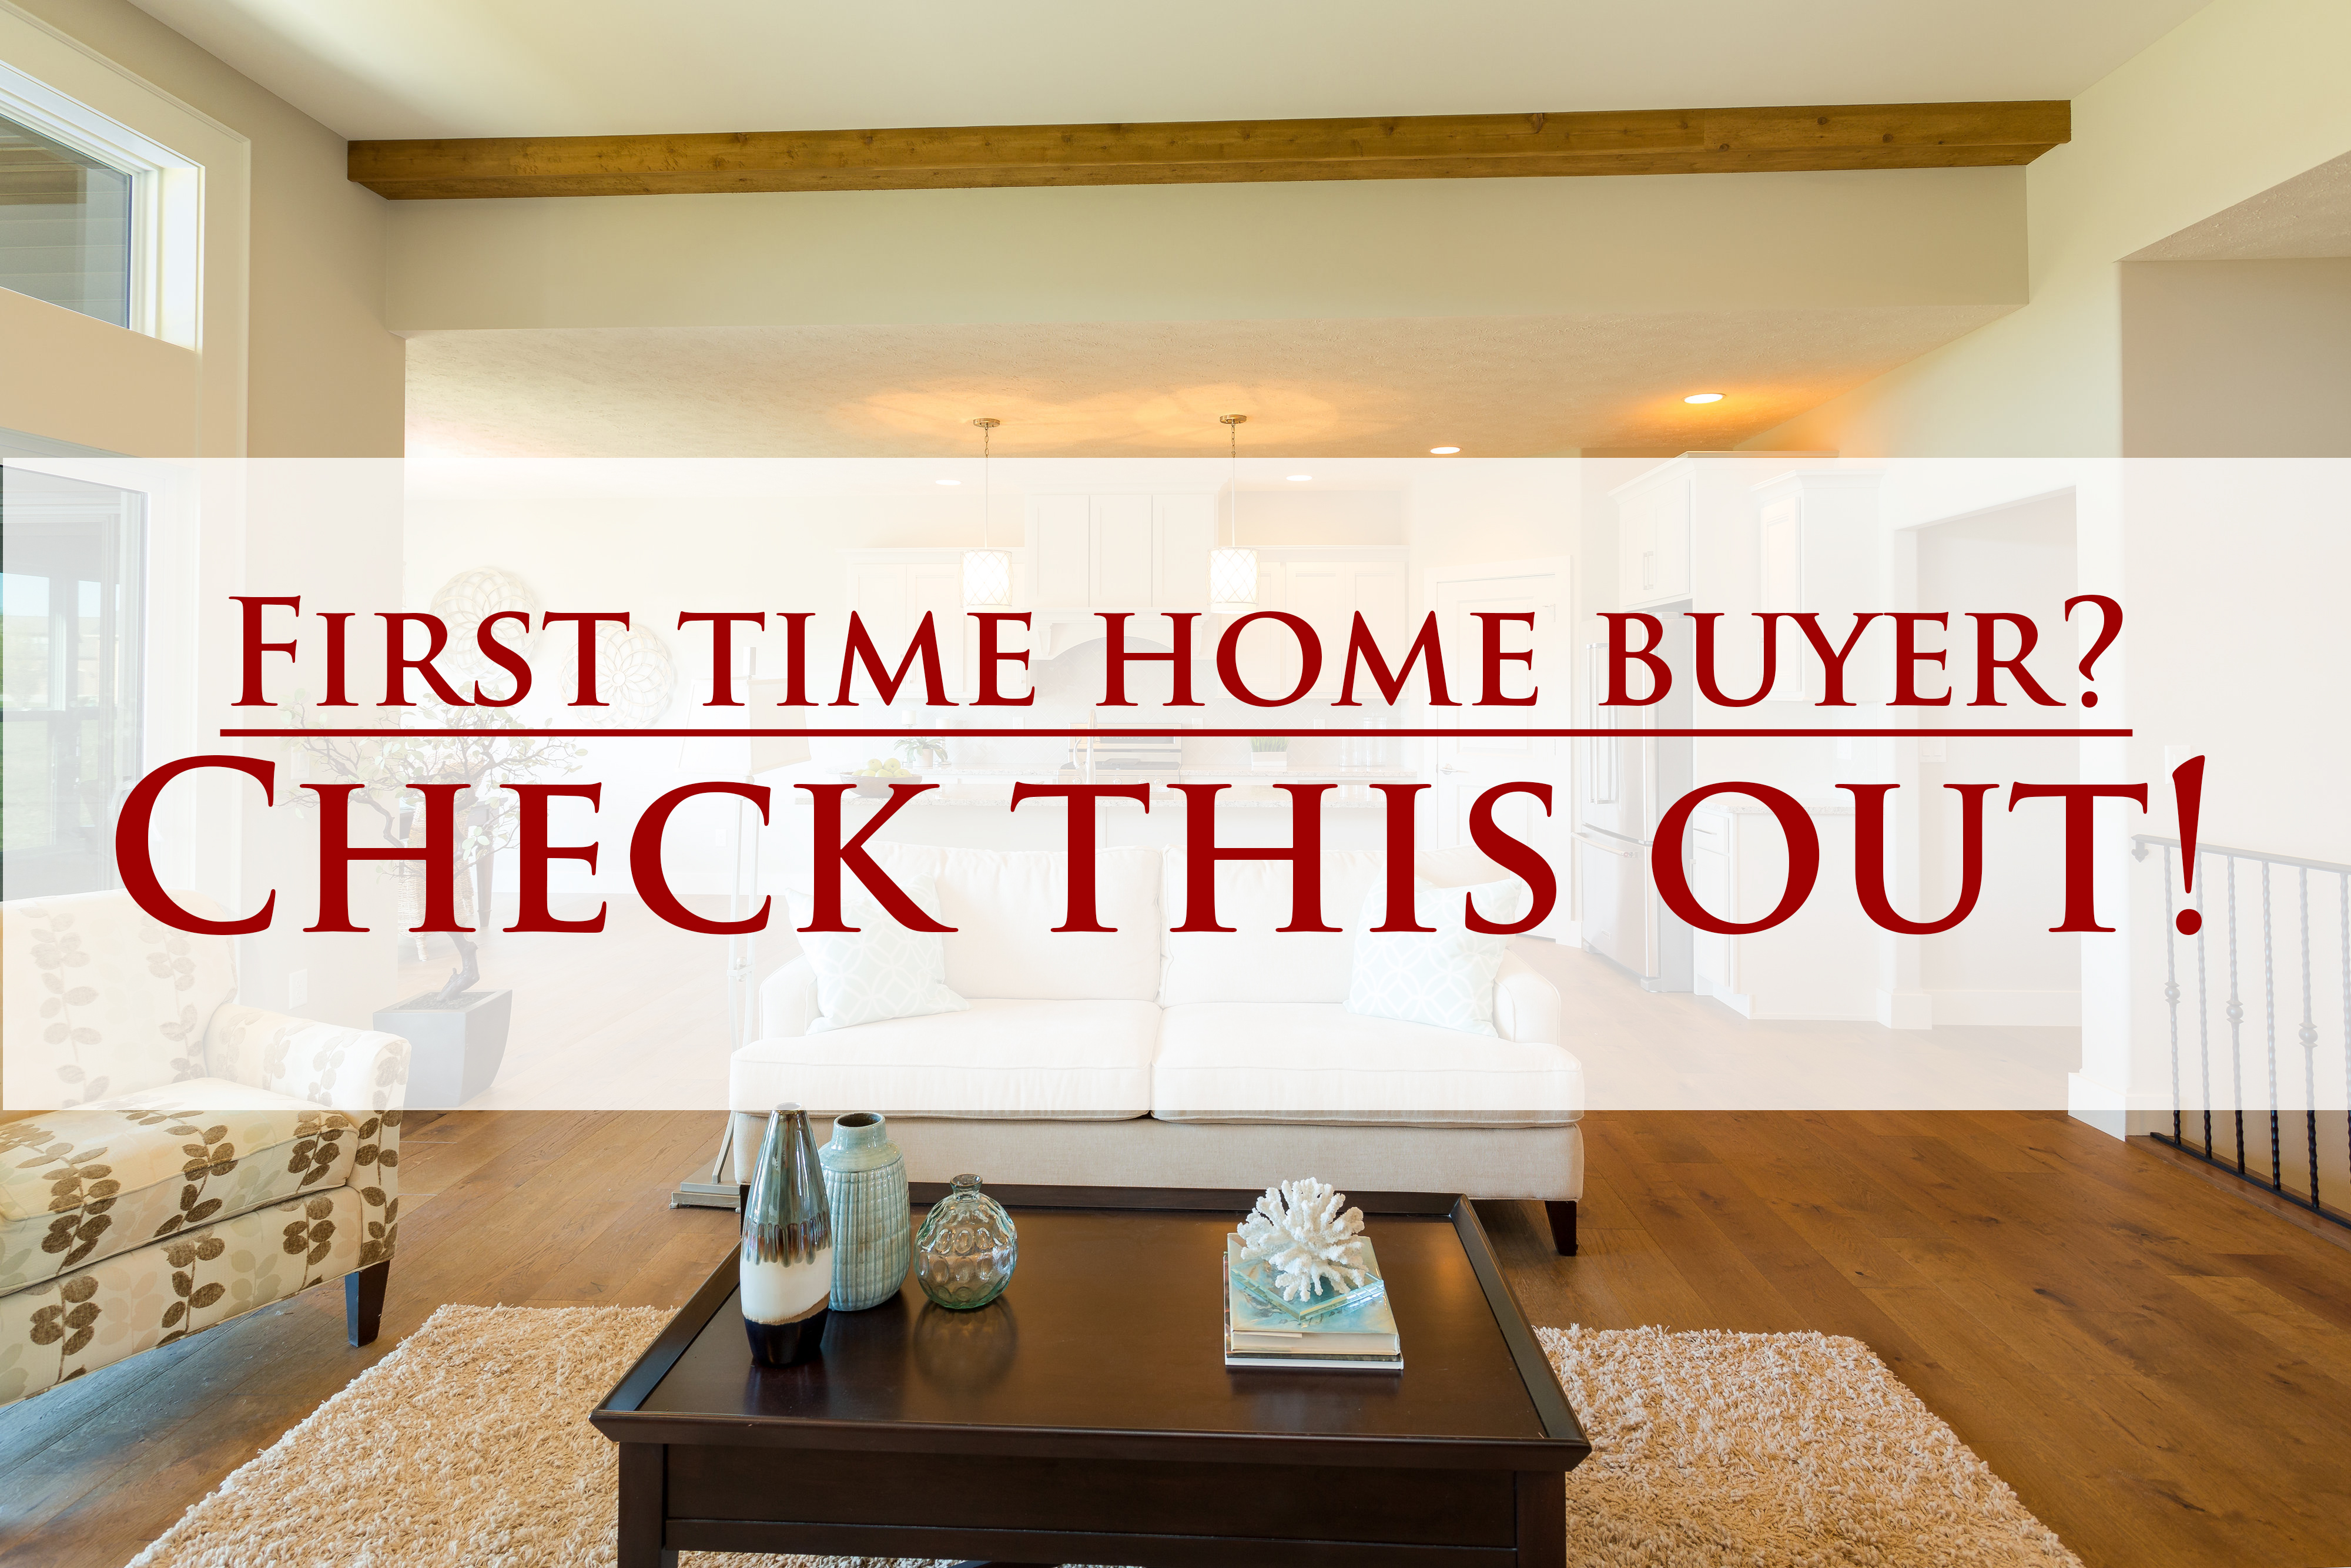 First Time Home Buyer? Qualifying For a Home Loan Just Got Easier!